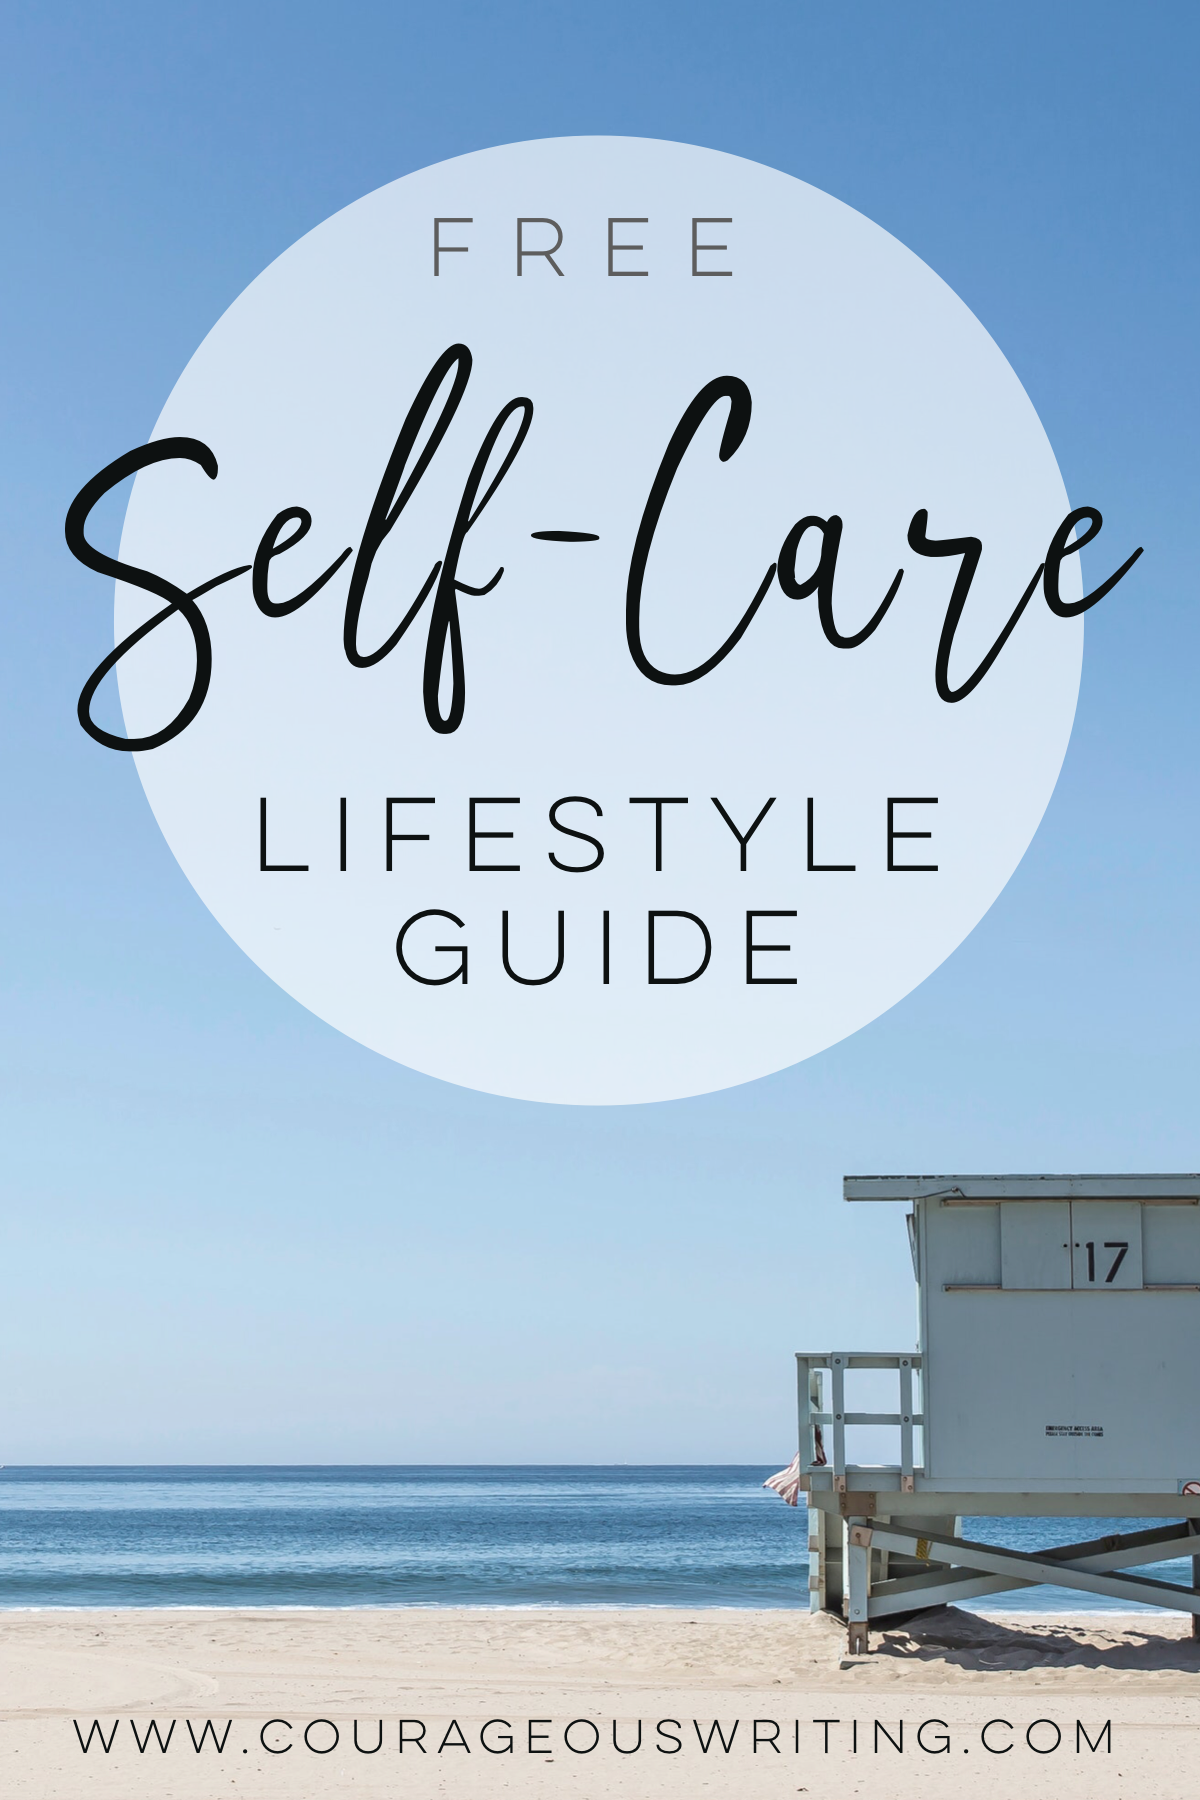 Free Self-Care Lifestyle Guide | Calendar worksheets, Lifestyle and ...